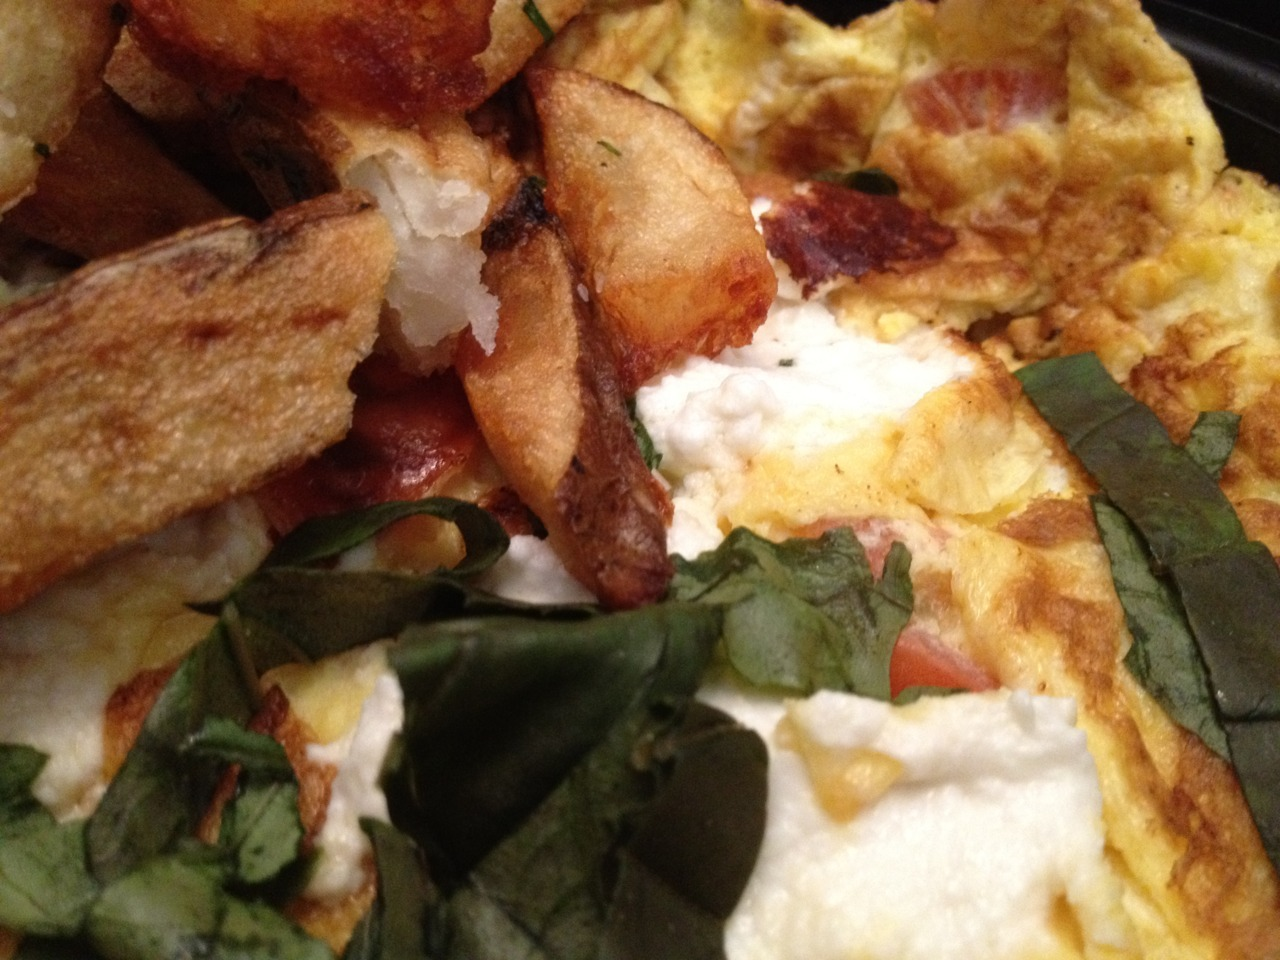 Goat Cheese Frittata and French Fries at Sunburst Espresso Bar, East Village, NYC